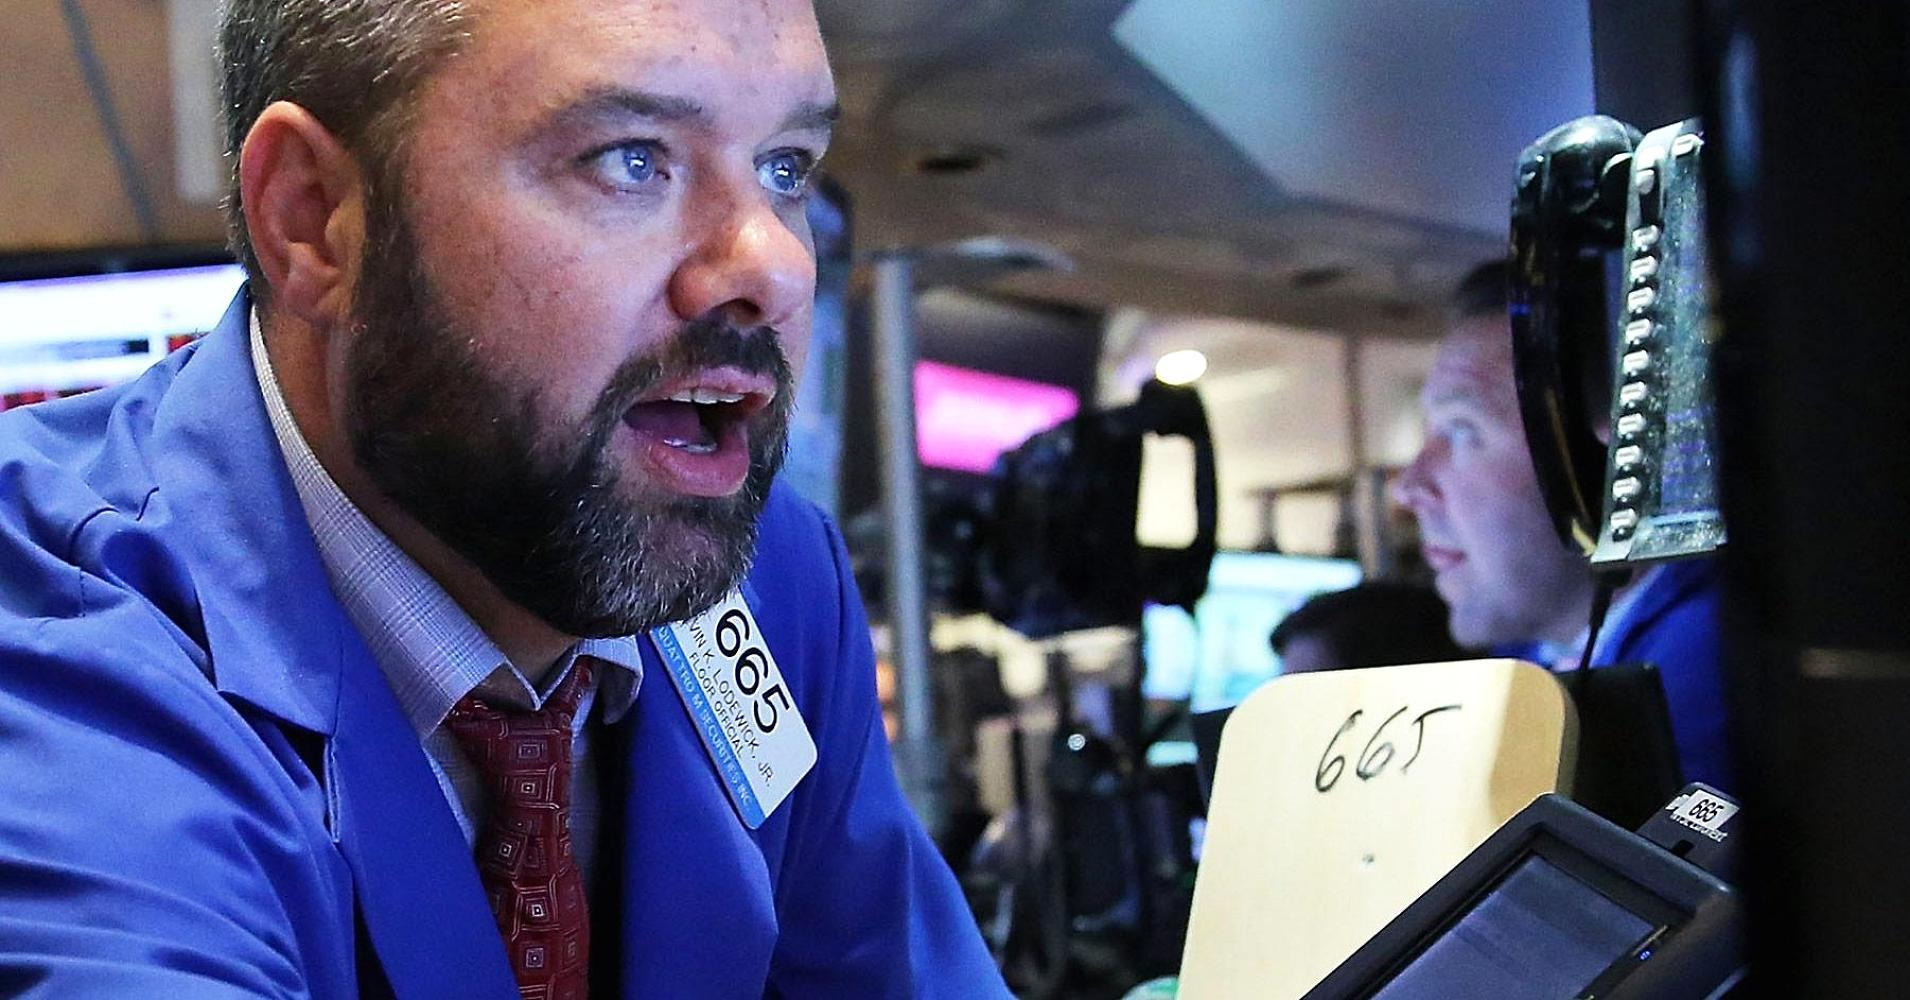 Early movers: DE, HRL, BXLT, TIVO, WMT & more